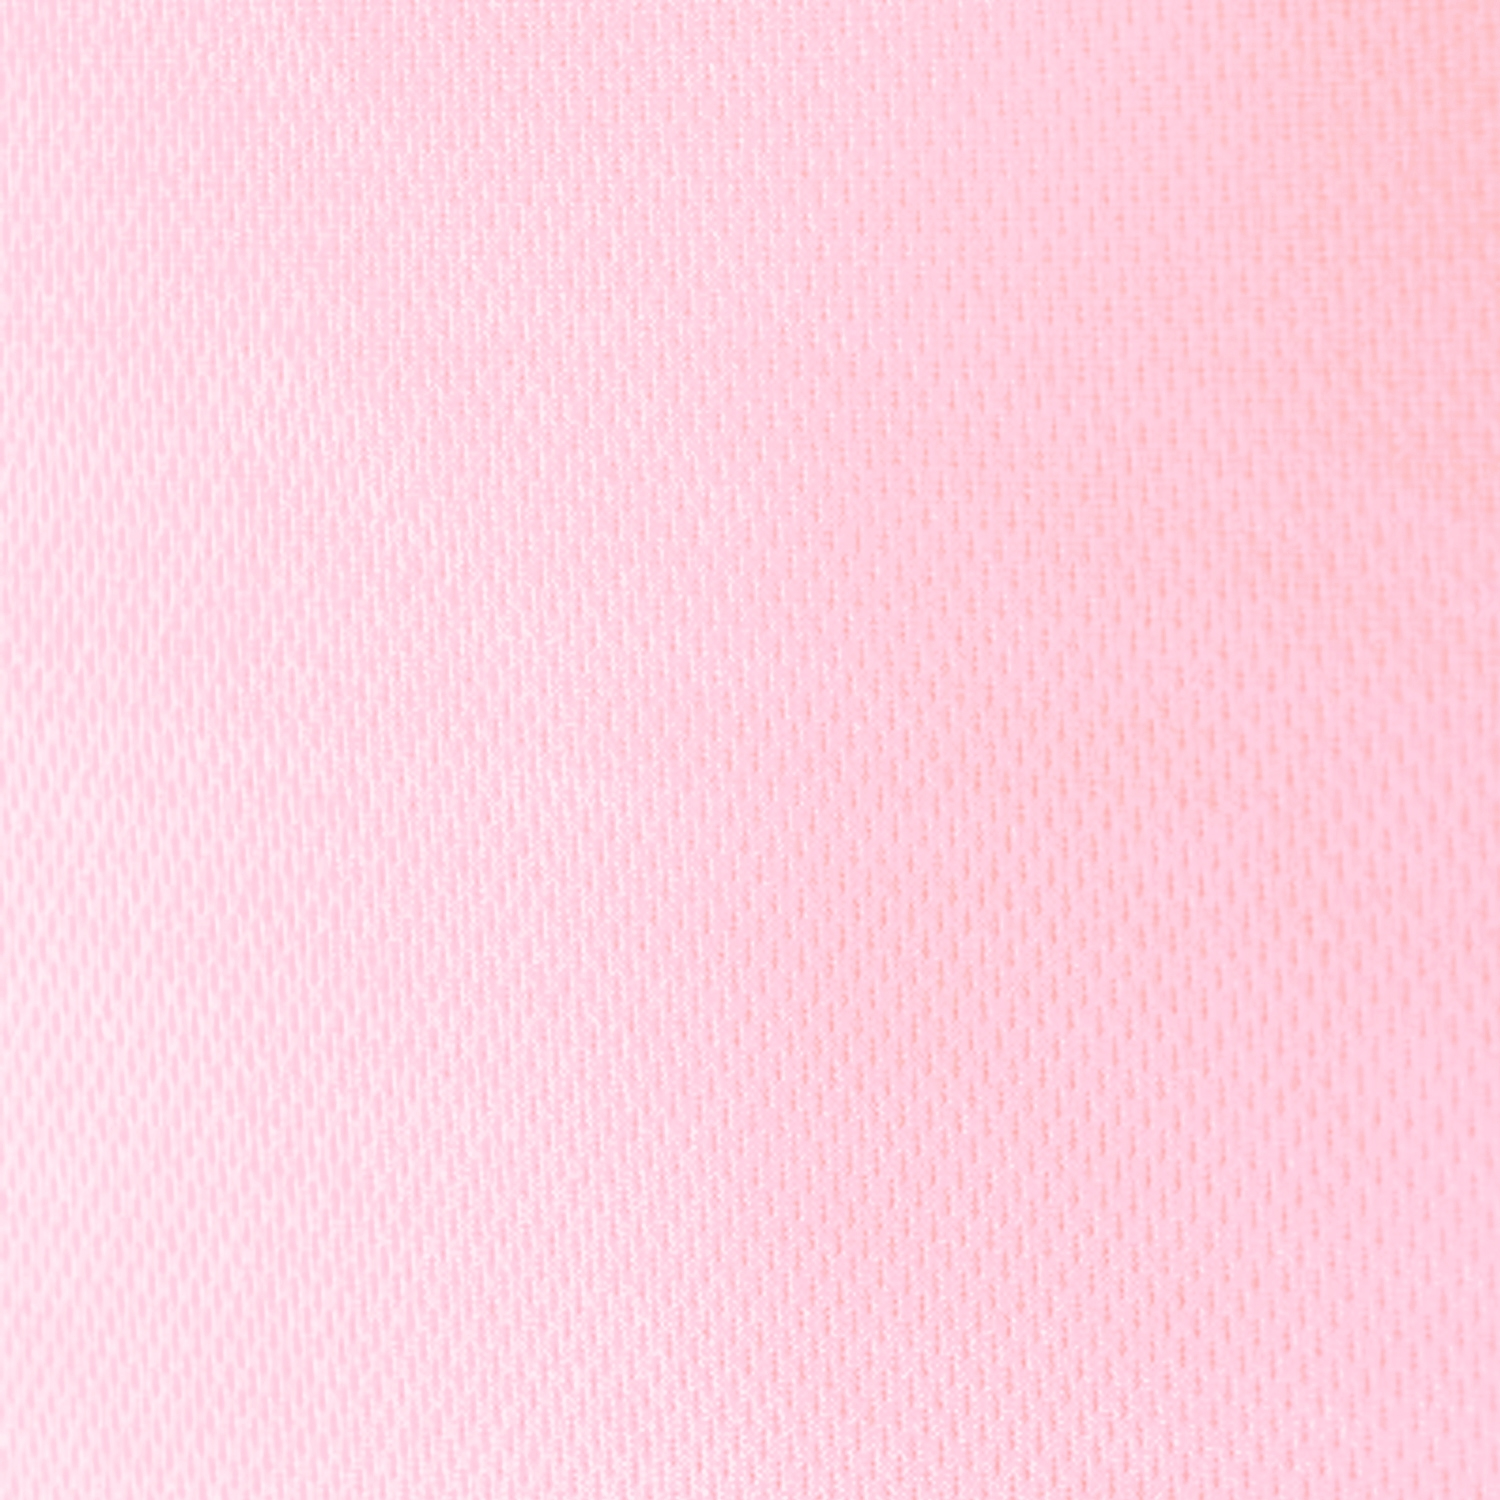 Baby Pink Flat Back Dimple Mesh Fabric